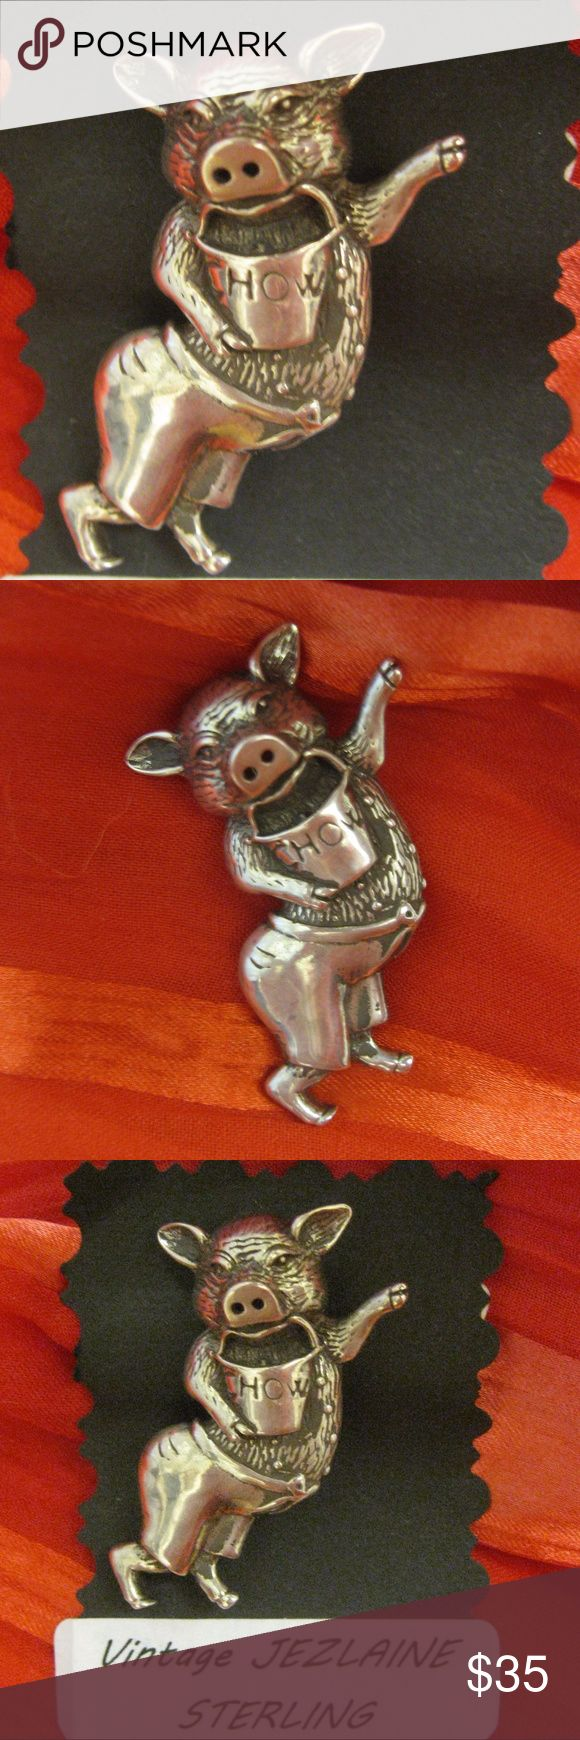 "Vintage JEZLAINE Sterling Silver Pig Hog Brooch Charming 1980s detailed dimensional sterling silver pig by JEZLAINE. This little critter wears pants cinched with a bowed rope belt and carries a bucket marked ""CHOW"".  No detail is left undone, from his little pig hairs to the facial features to the split hooves.  So cute!!  Secure rollover clasp.  Perfect for your collection or for that farm animal loving friend. Signed ""JS 925 ©"".  1 1/2"" x 1"" x 1/2"". 7.5g  (1017NS-274) Jezlaine Sterling…"